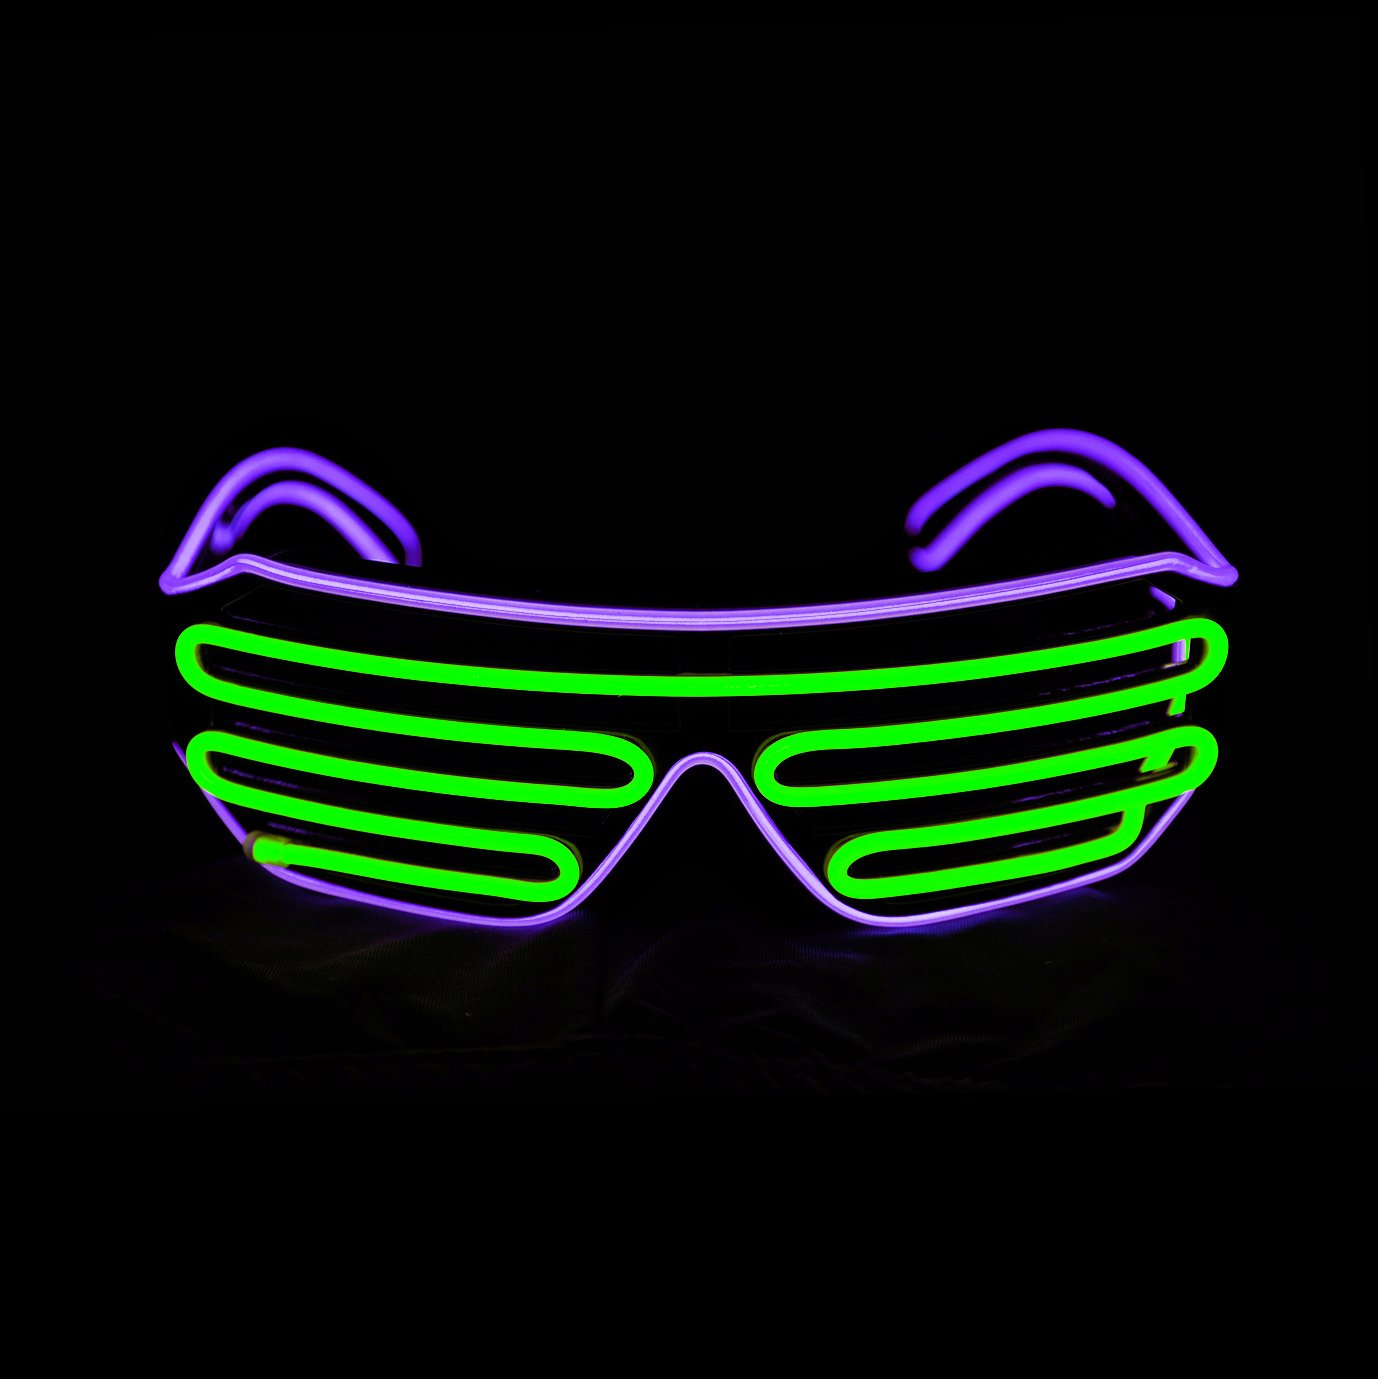 2a3109cdf0 Amazon.com  PINFOX Shutter EL Wire Neon Rave Glasses Flashing LED  Sunglasses Light Up Costumes for 80s